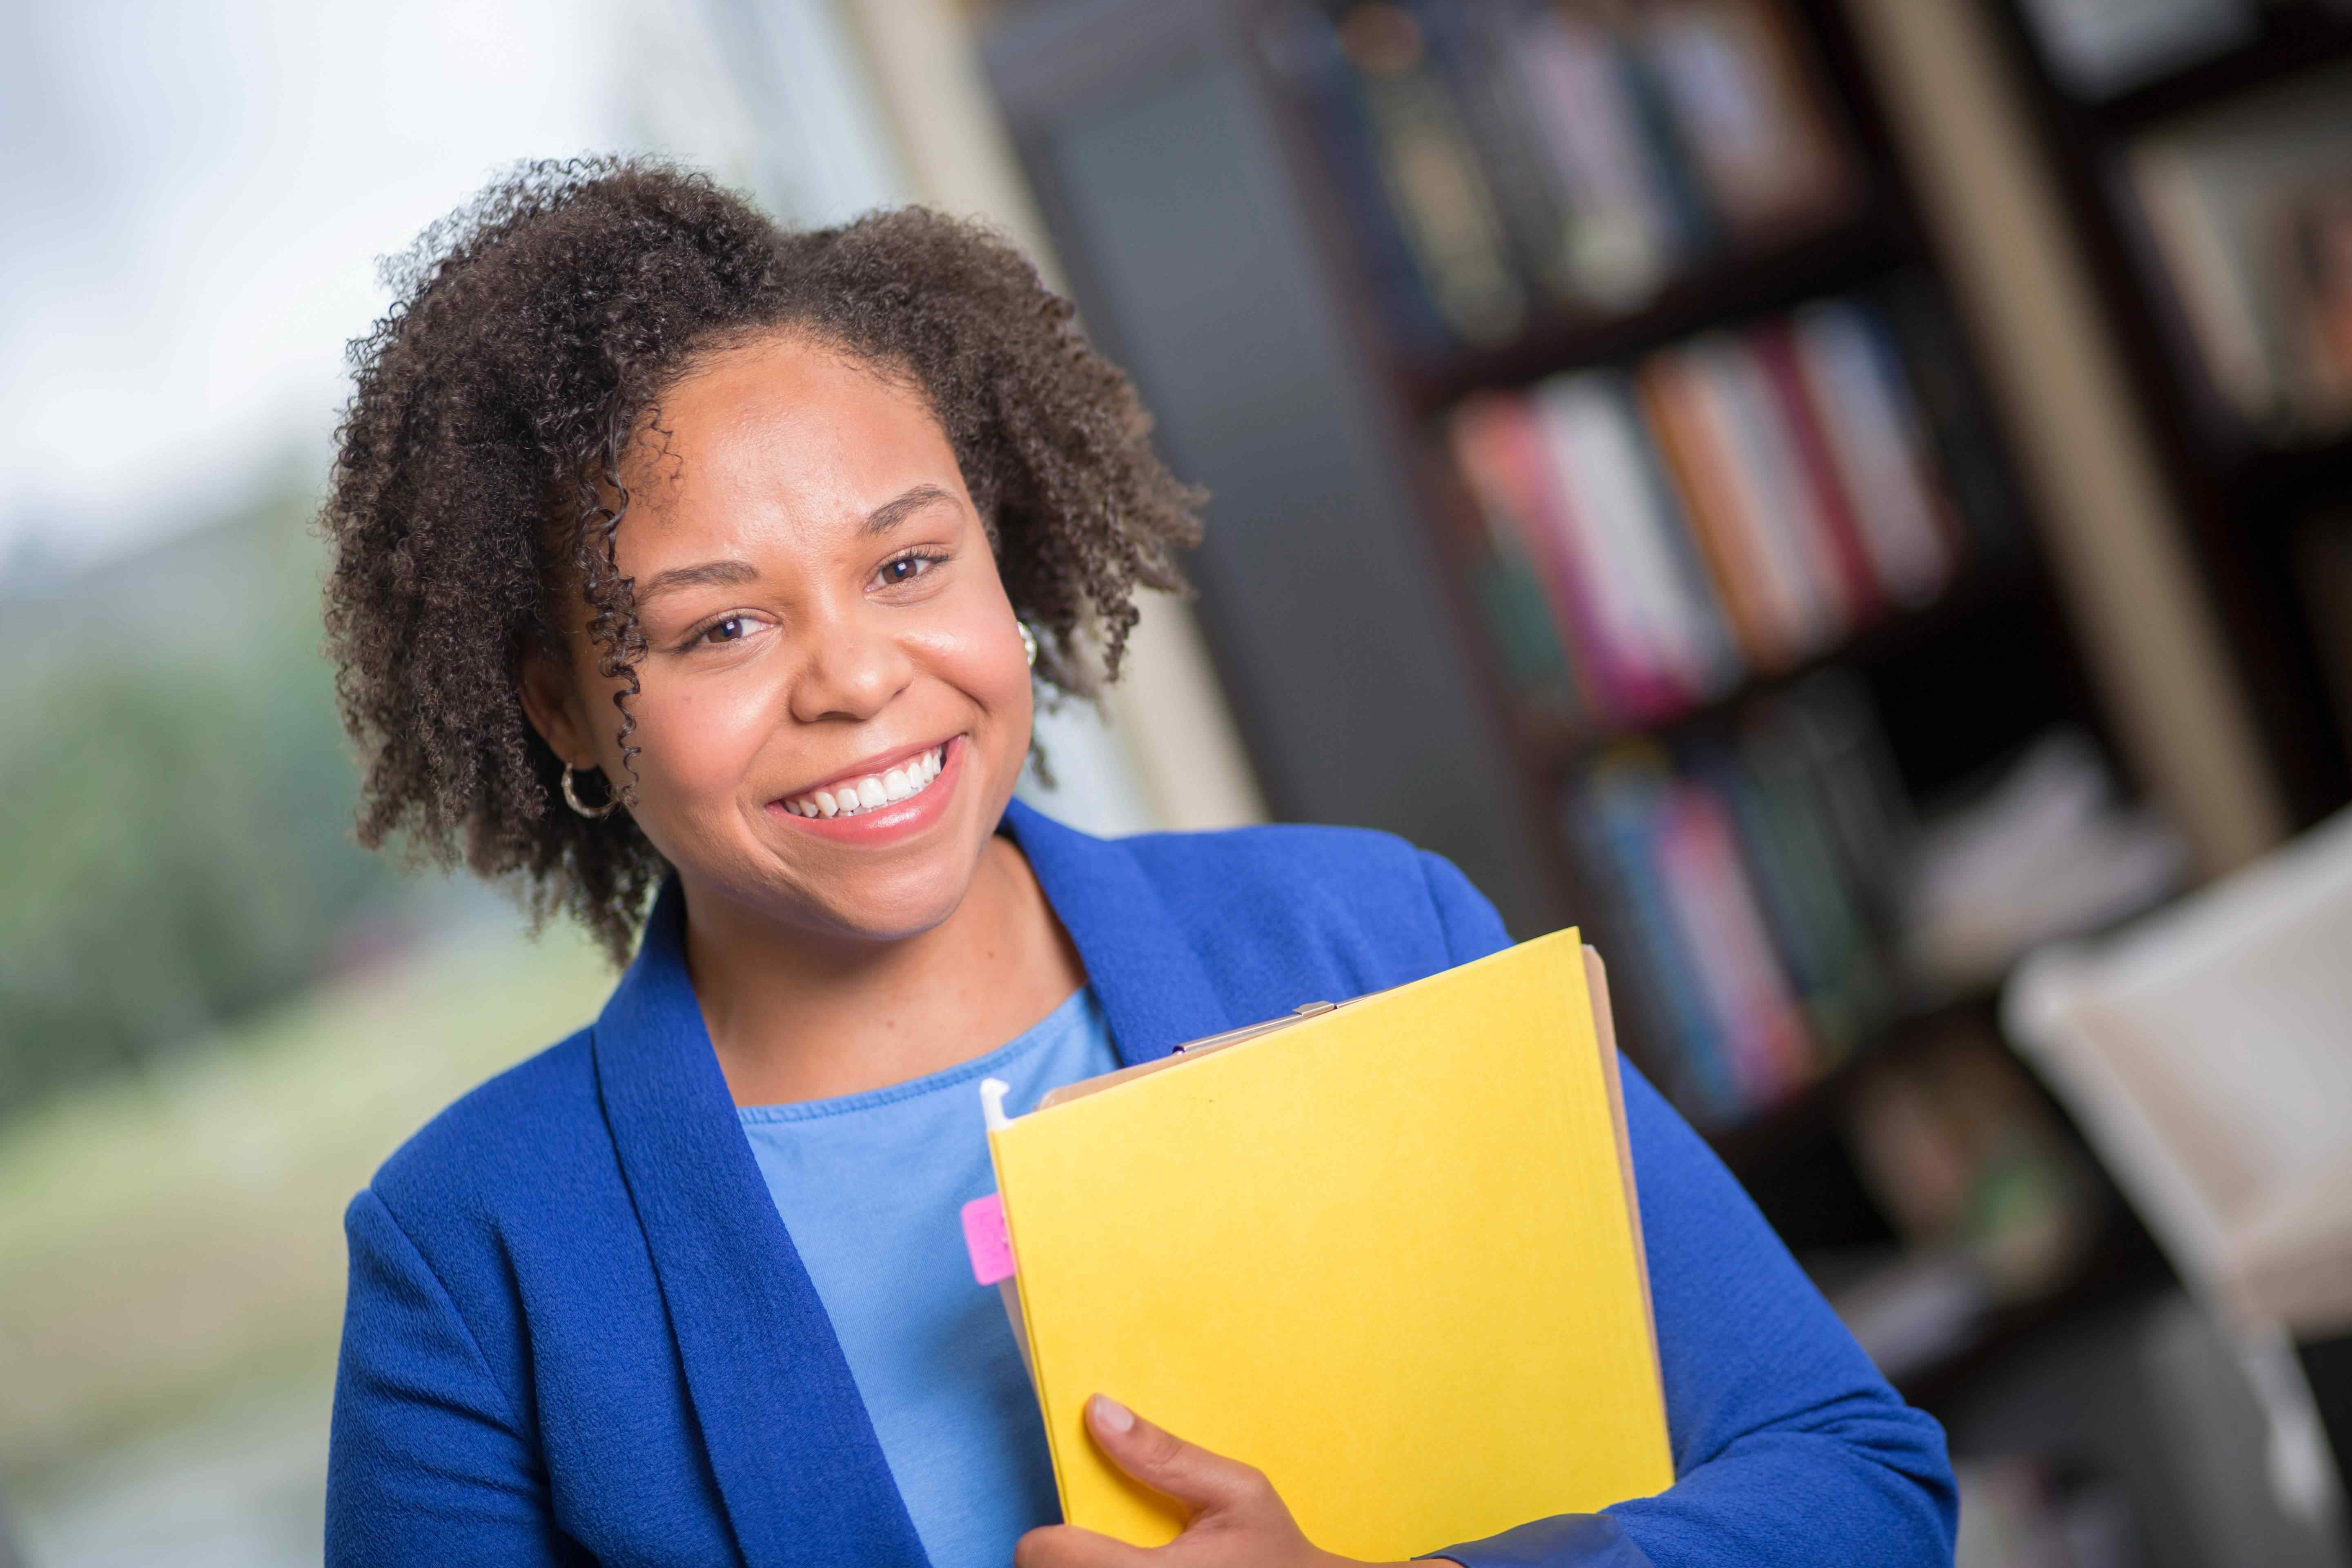 Female business student smiling and holding files.